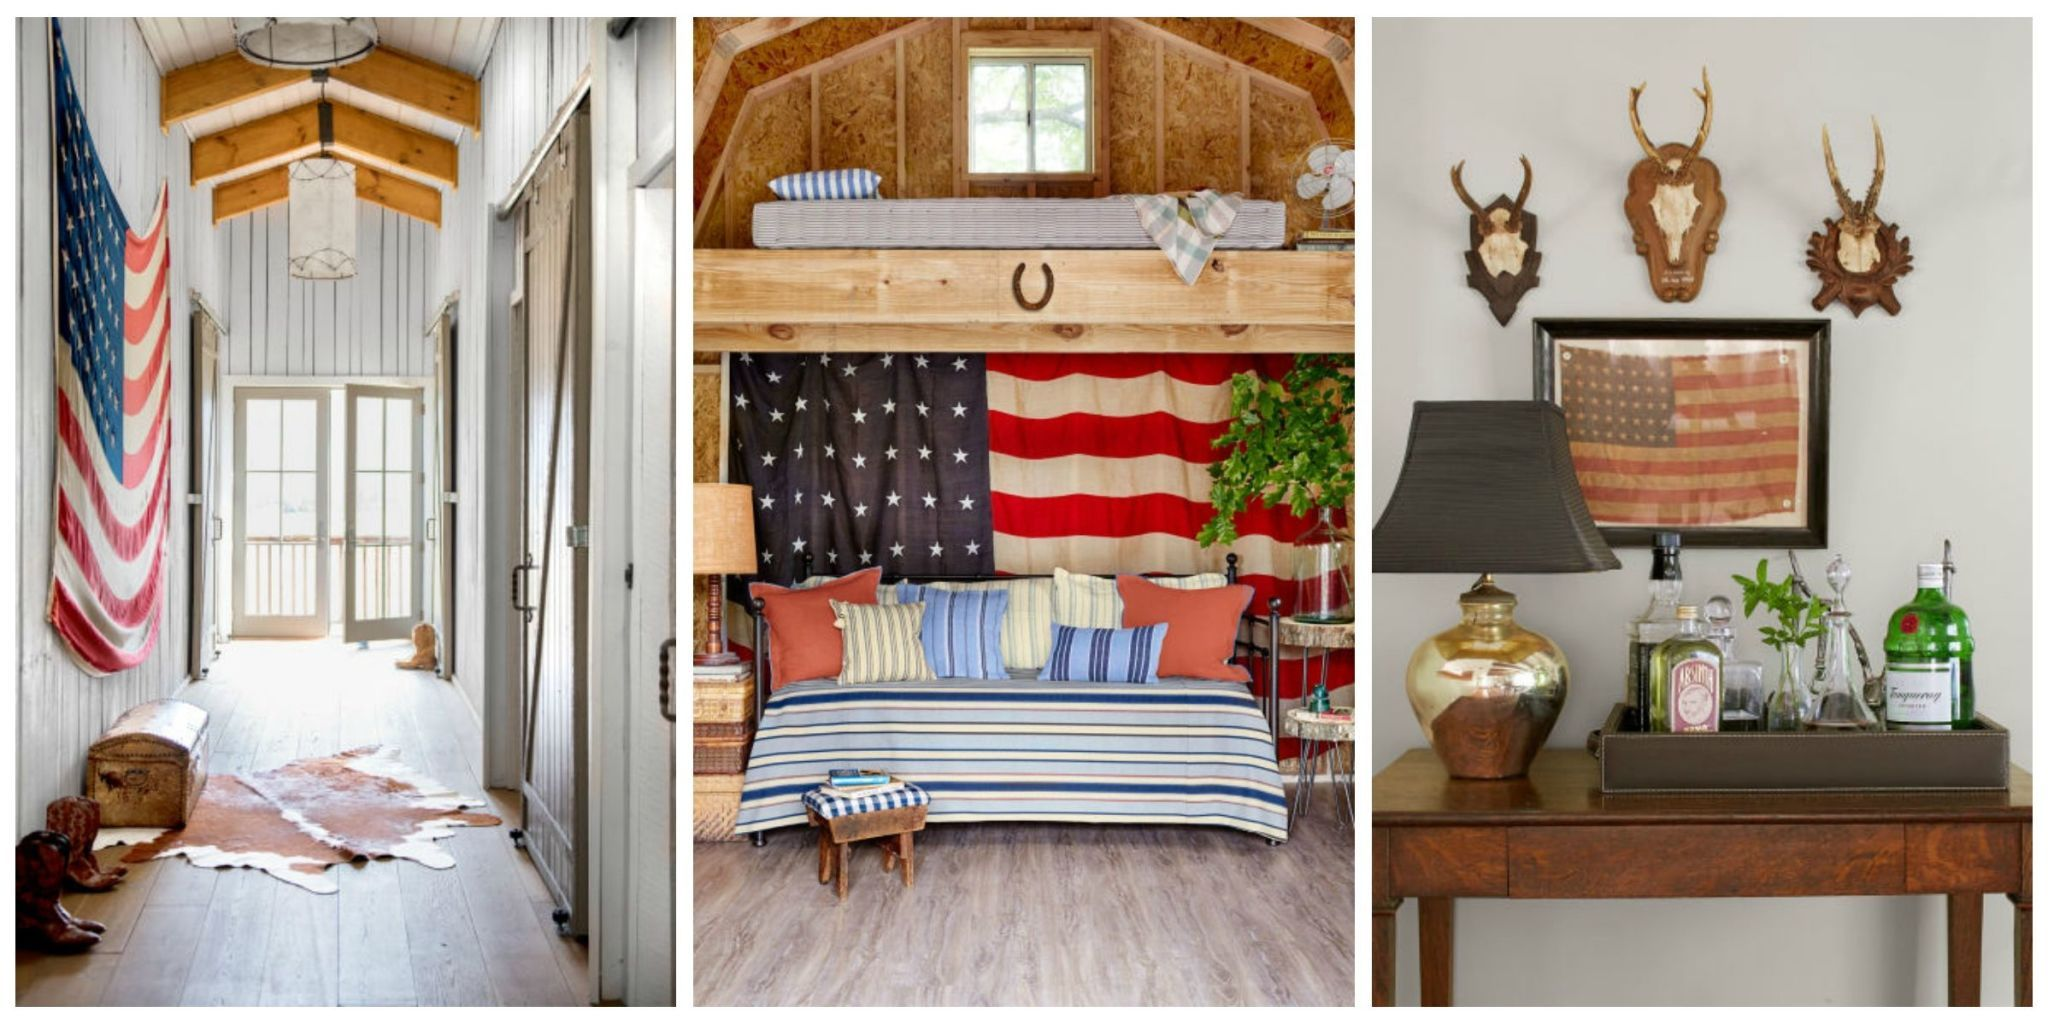 Add A Dash Of Americana To Your House With These Patriotic Decorating Ideas.